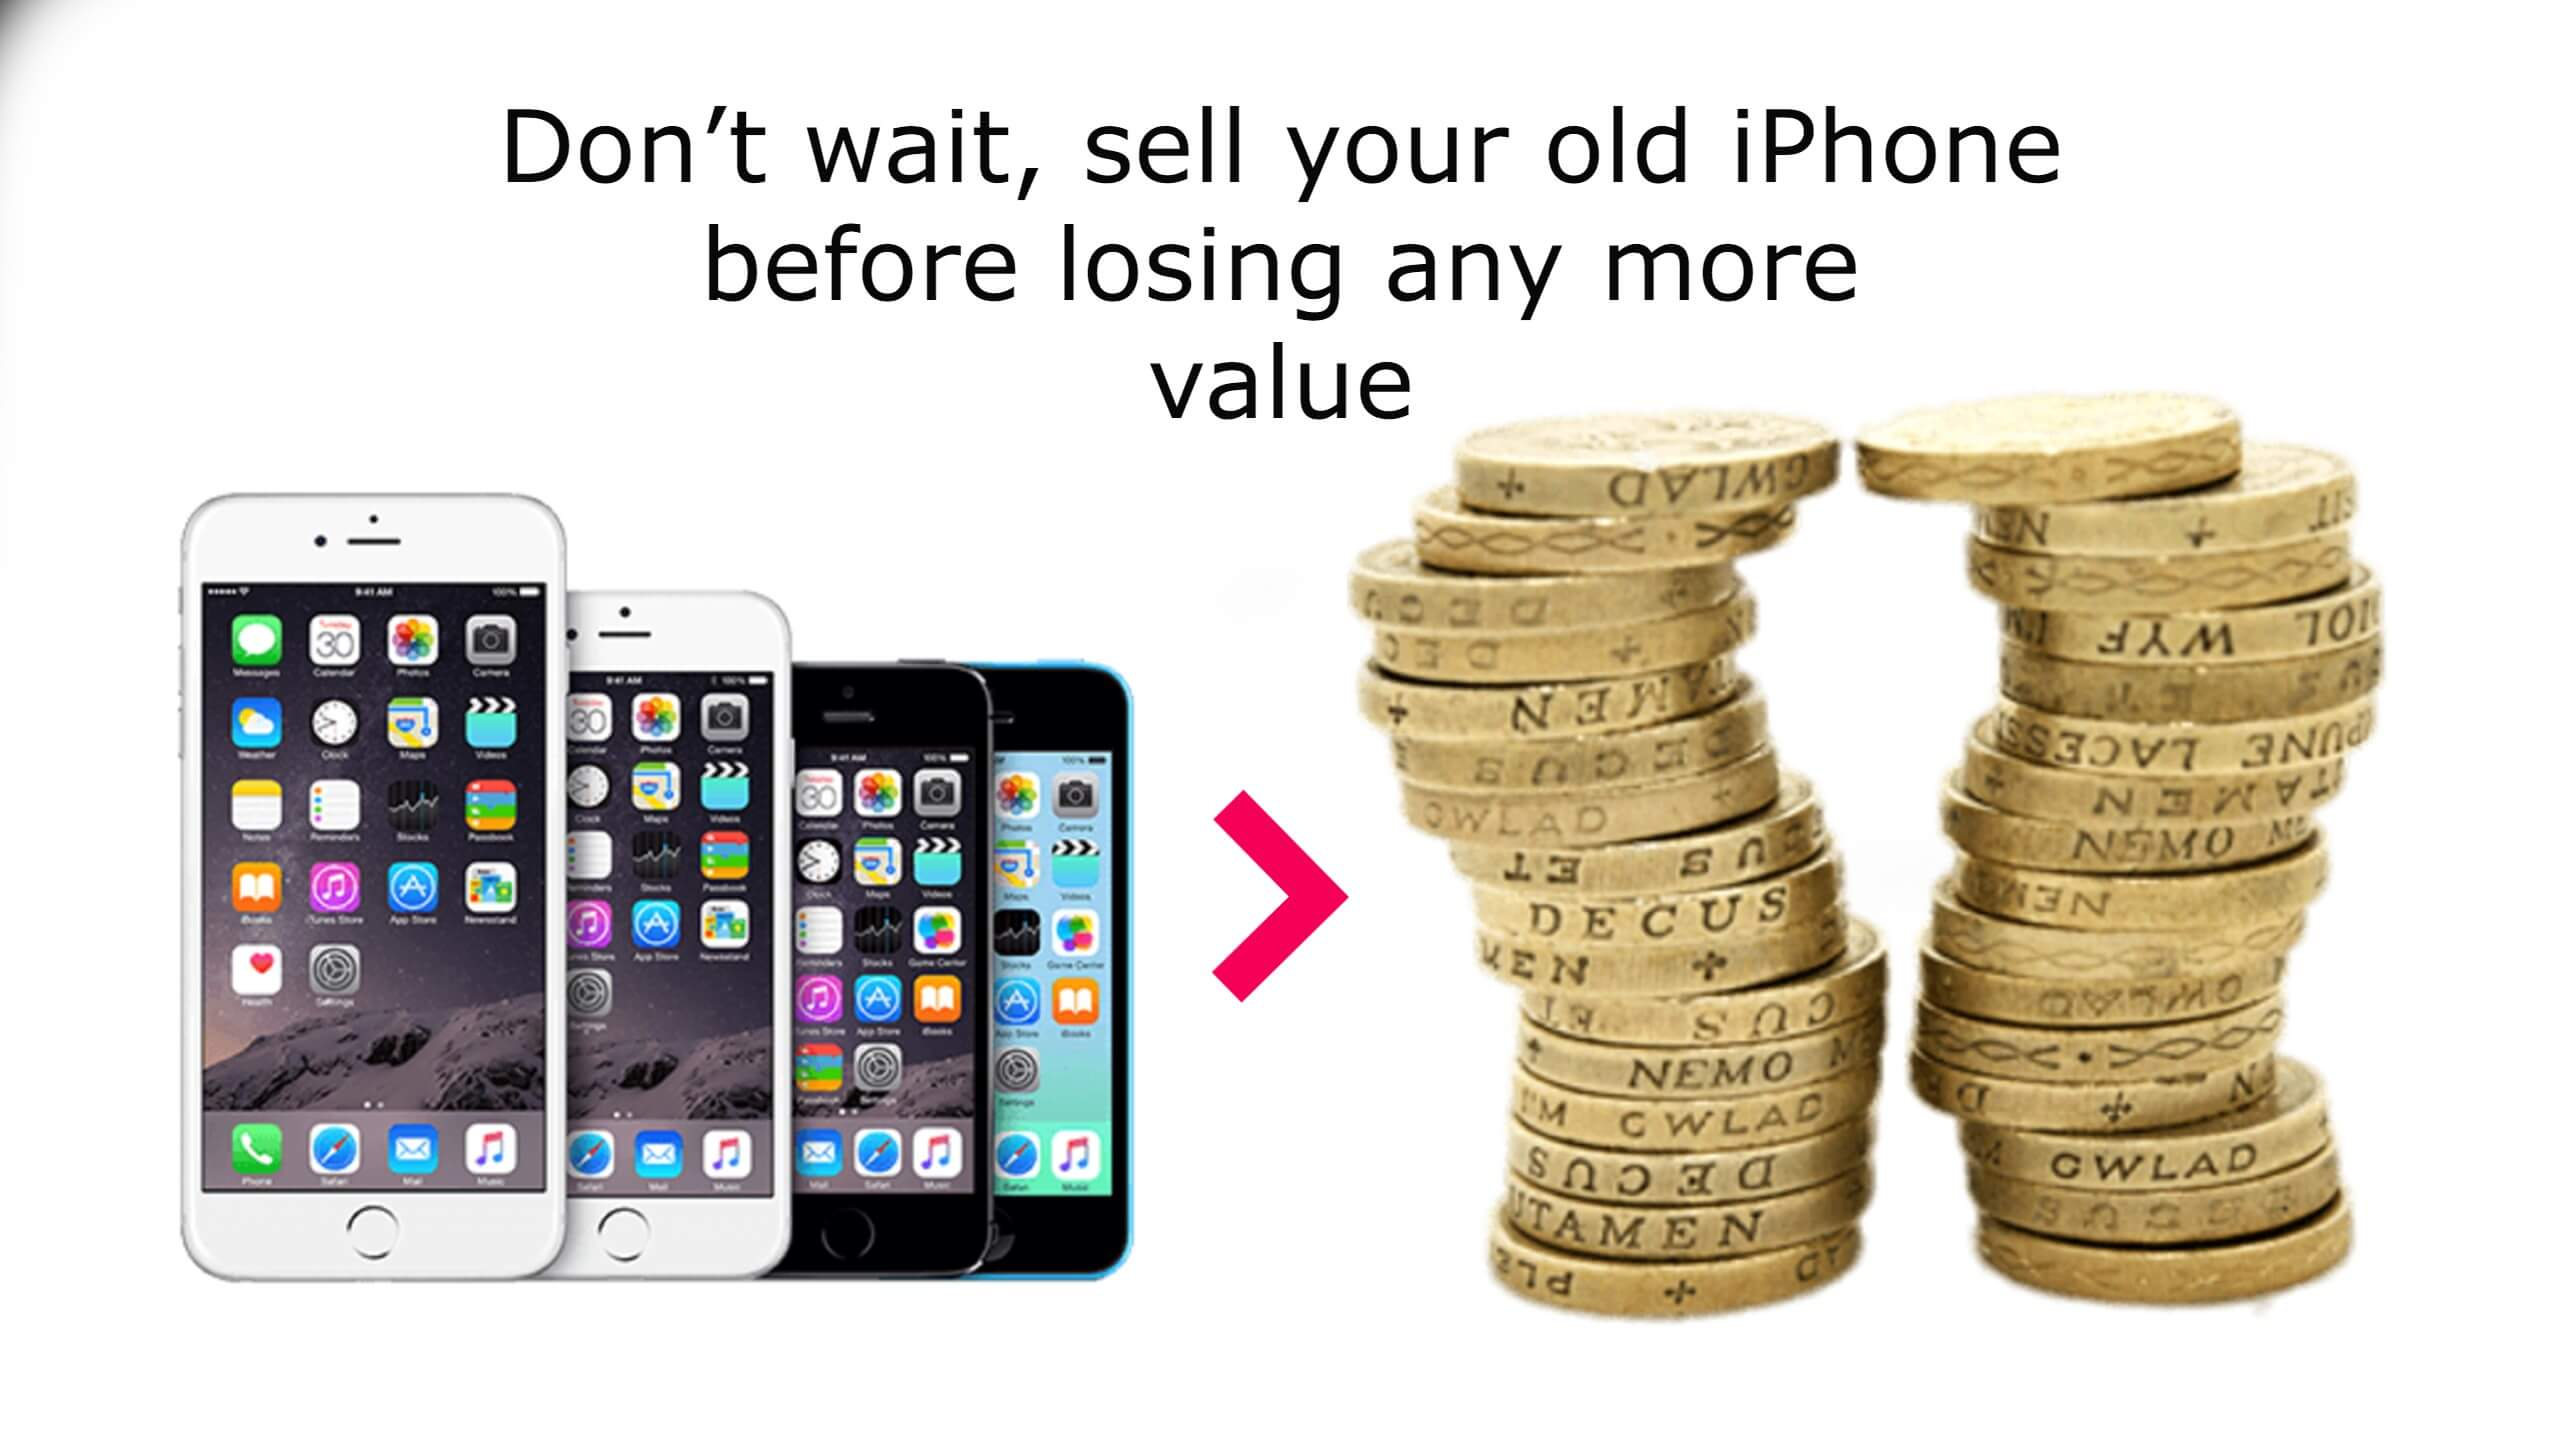 Don't wait, sell your old iPhone before losing any more value